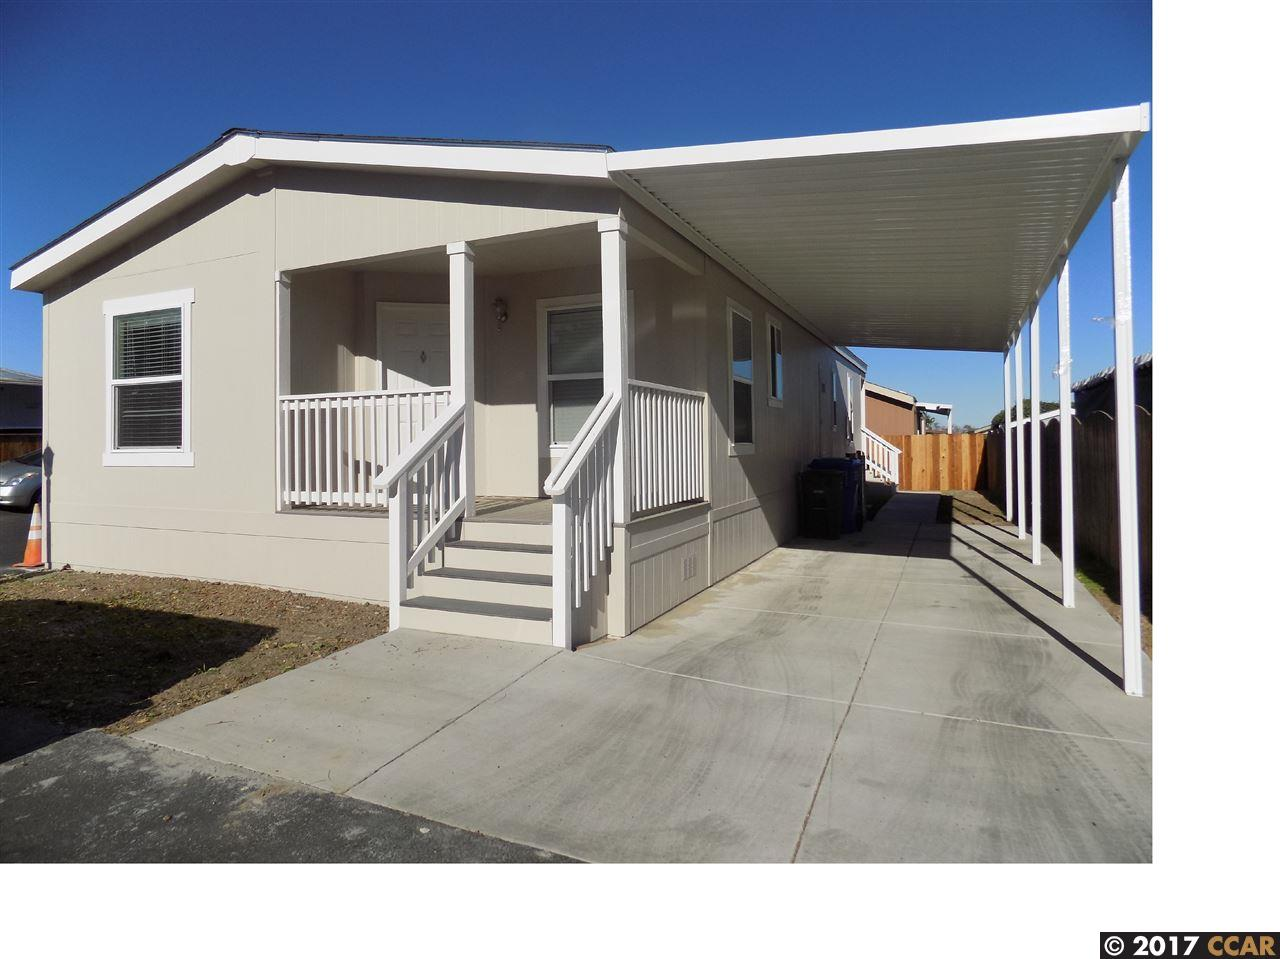 Additional photo for property listing at 55 Pacifica Avenue 55 Pacifica Avenue Bay Point, カリフォルニア 94565 アメリカ合衆国